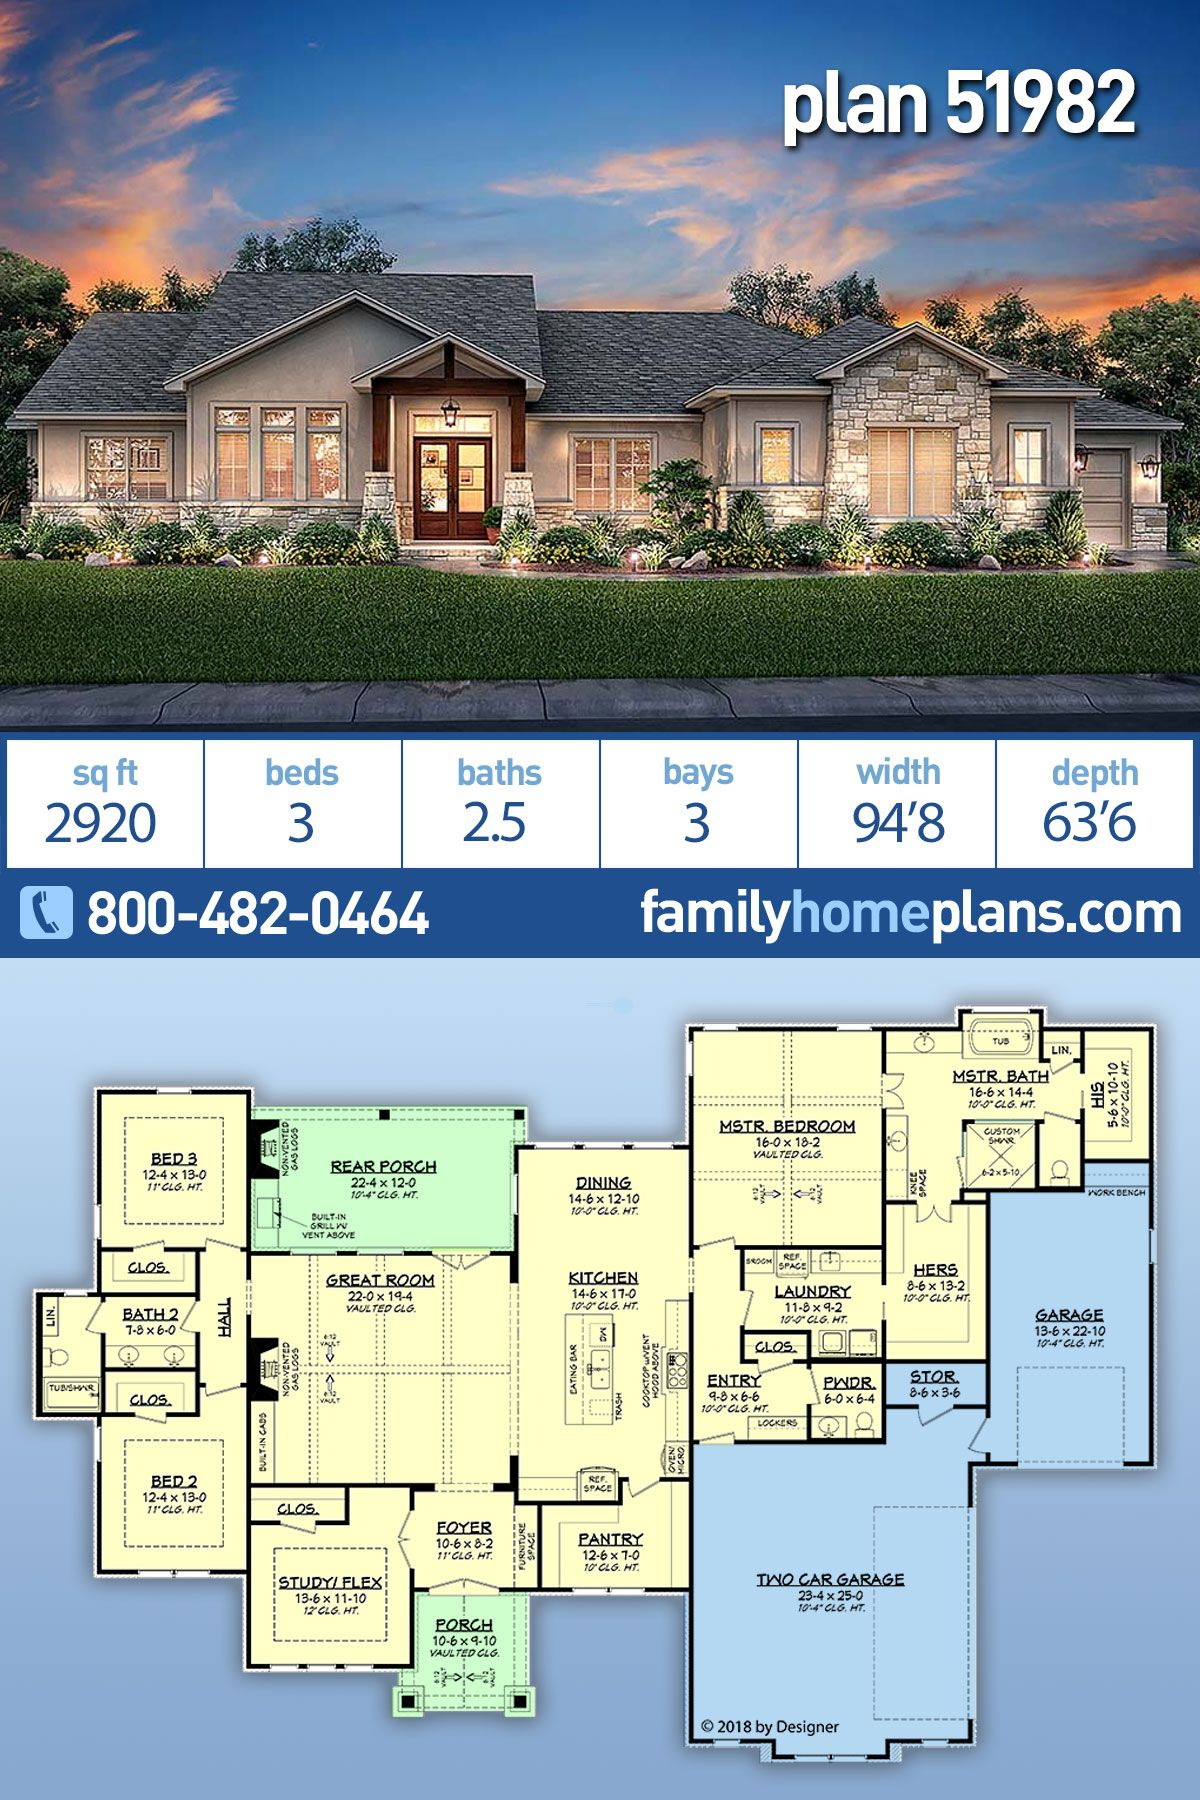 Tuscan Style House Plan 51982 With 3 Bed 3 Bath 3 Car Garage House Plans Ranch Home Floor Plans Building Plans House